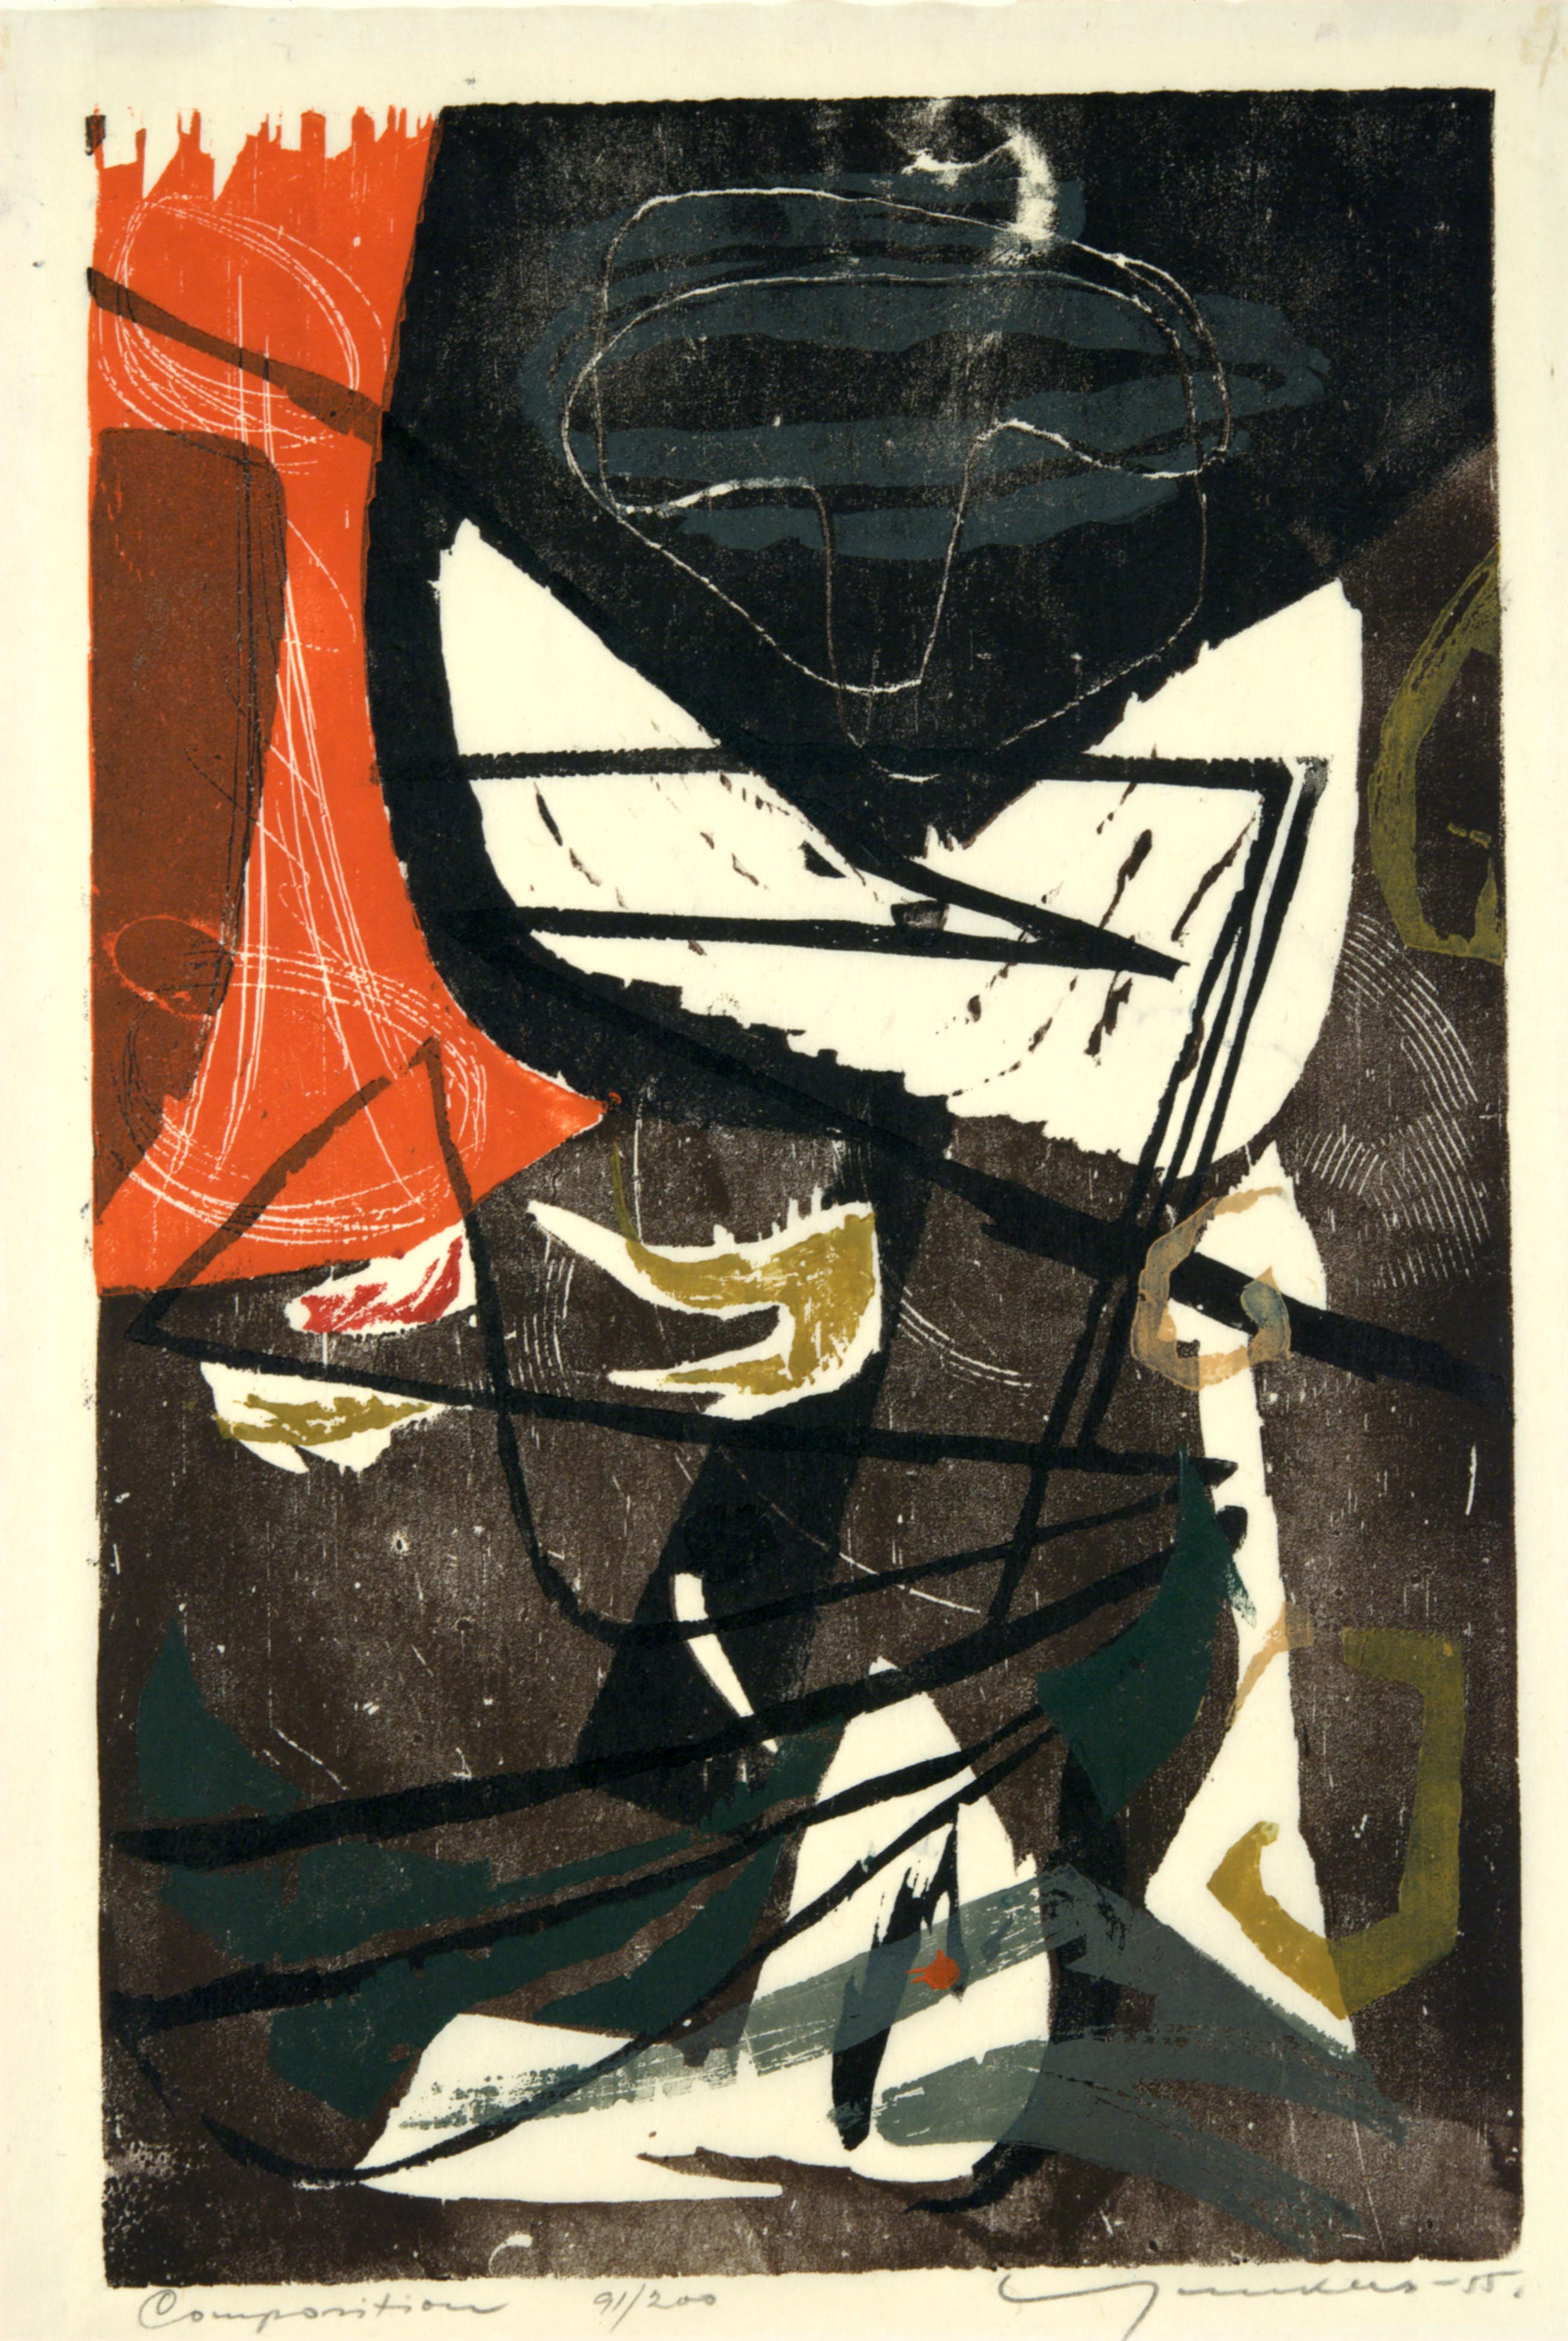 Adja Yunkers, Composition, 1955